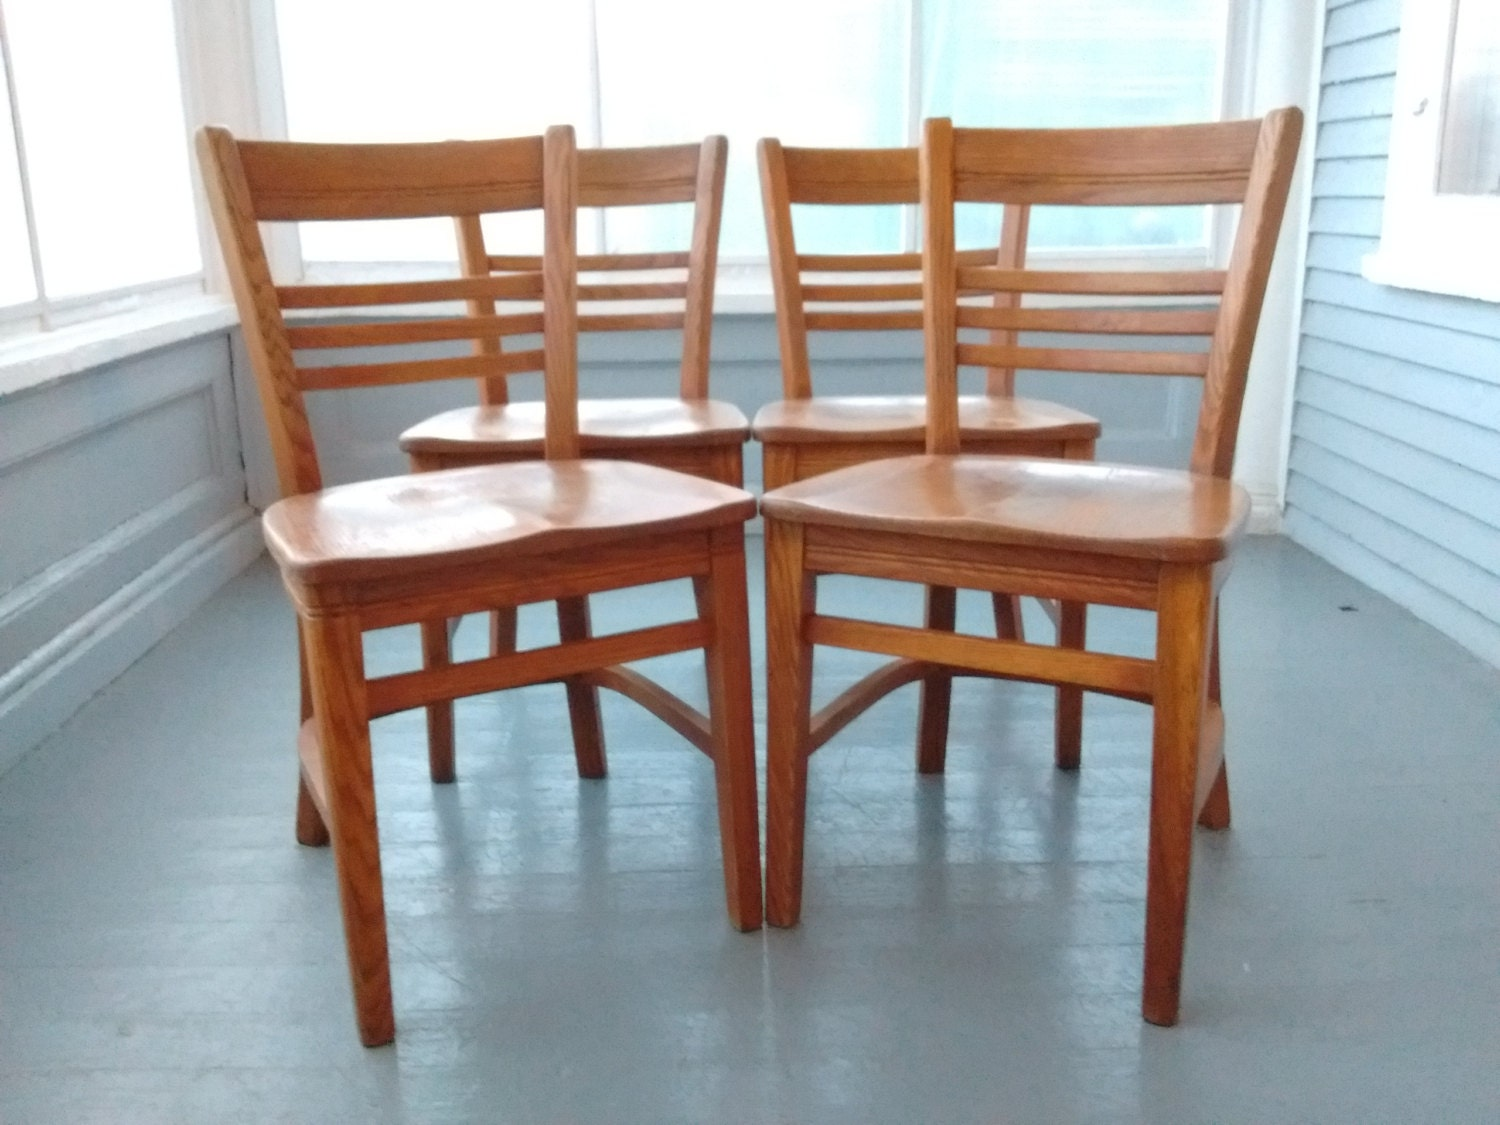 Vintage, Buckstaff, Set of Four, Kitchen Chairs, Dining Chairs, Bent